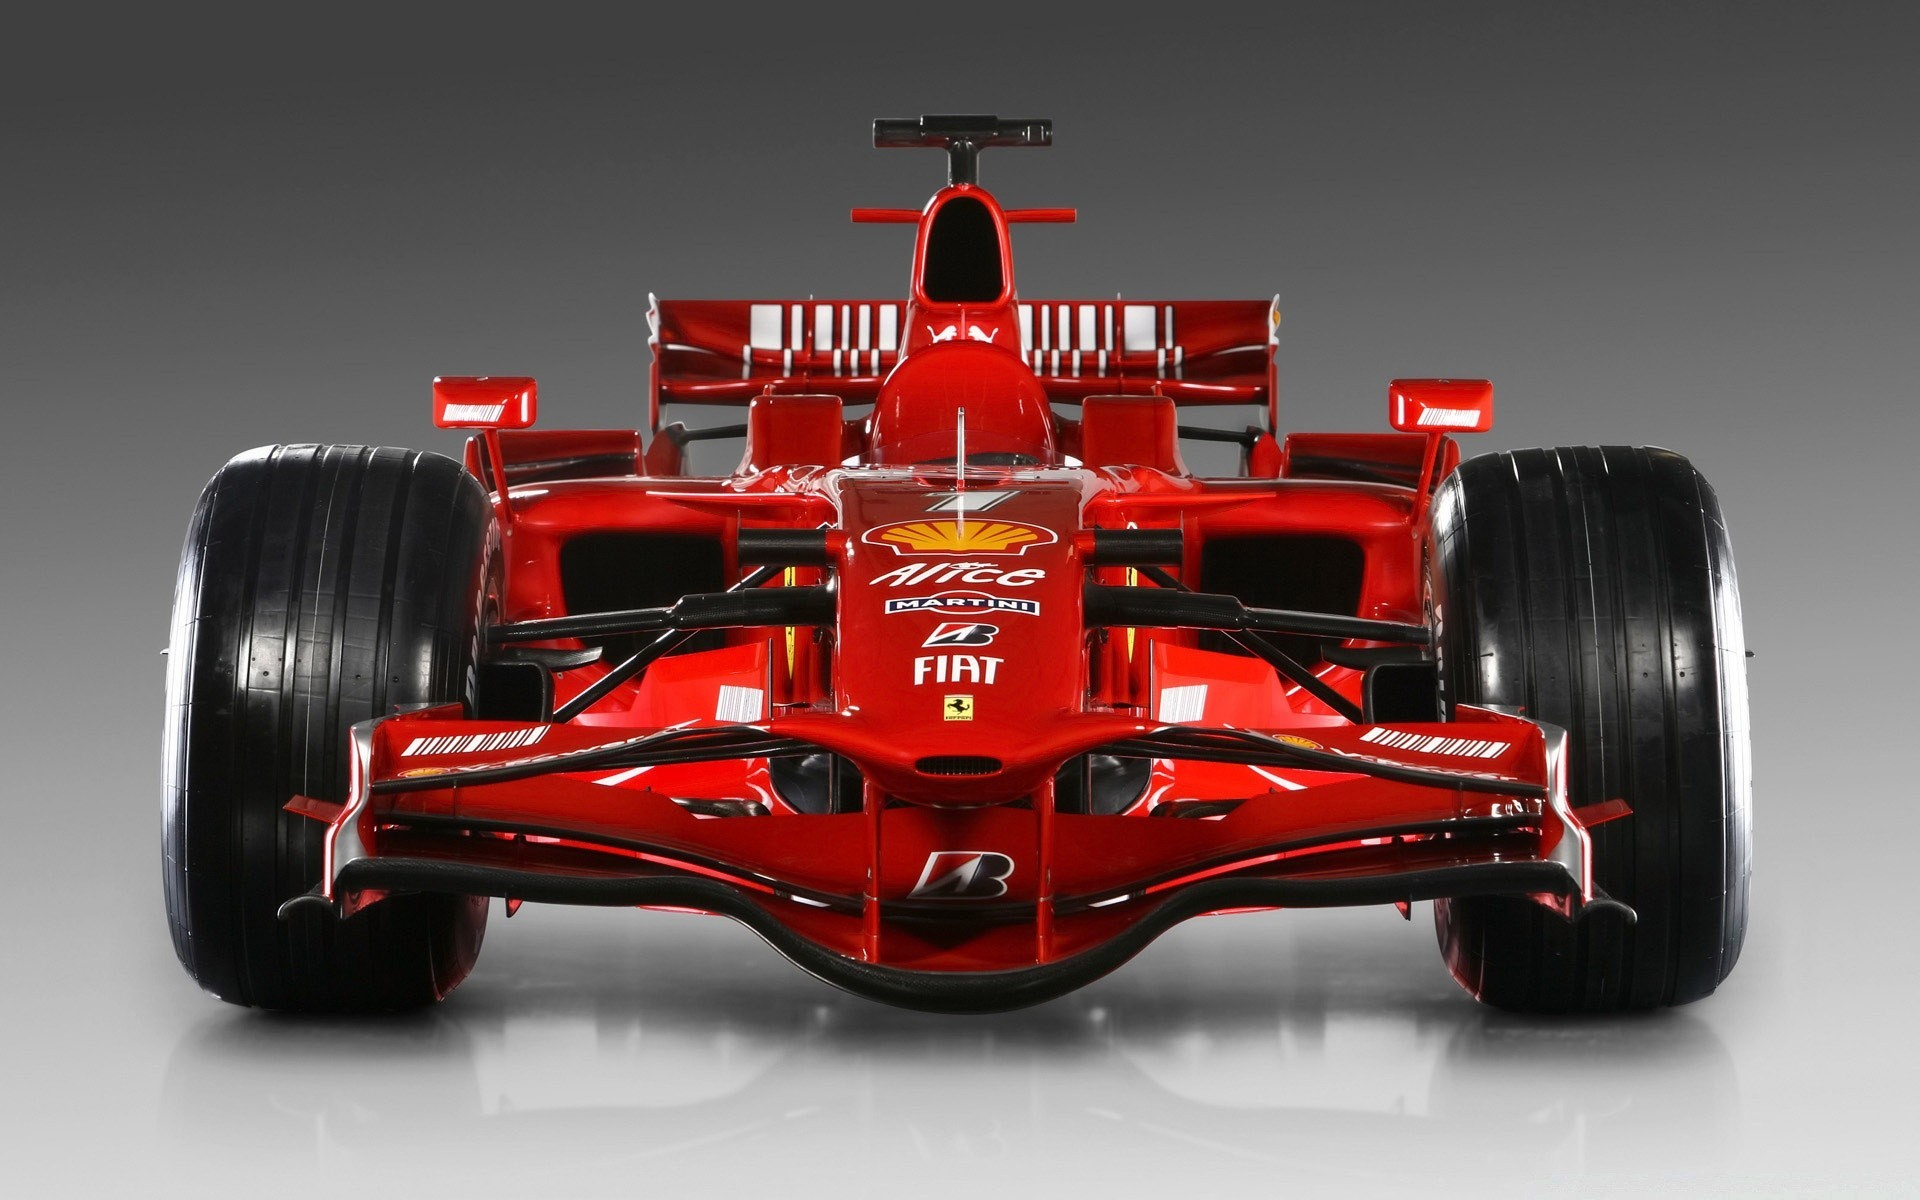 Ferrari Engine Wallpaper Iphone Best Hd Wallpaper